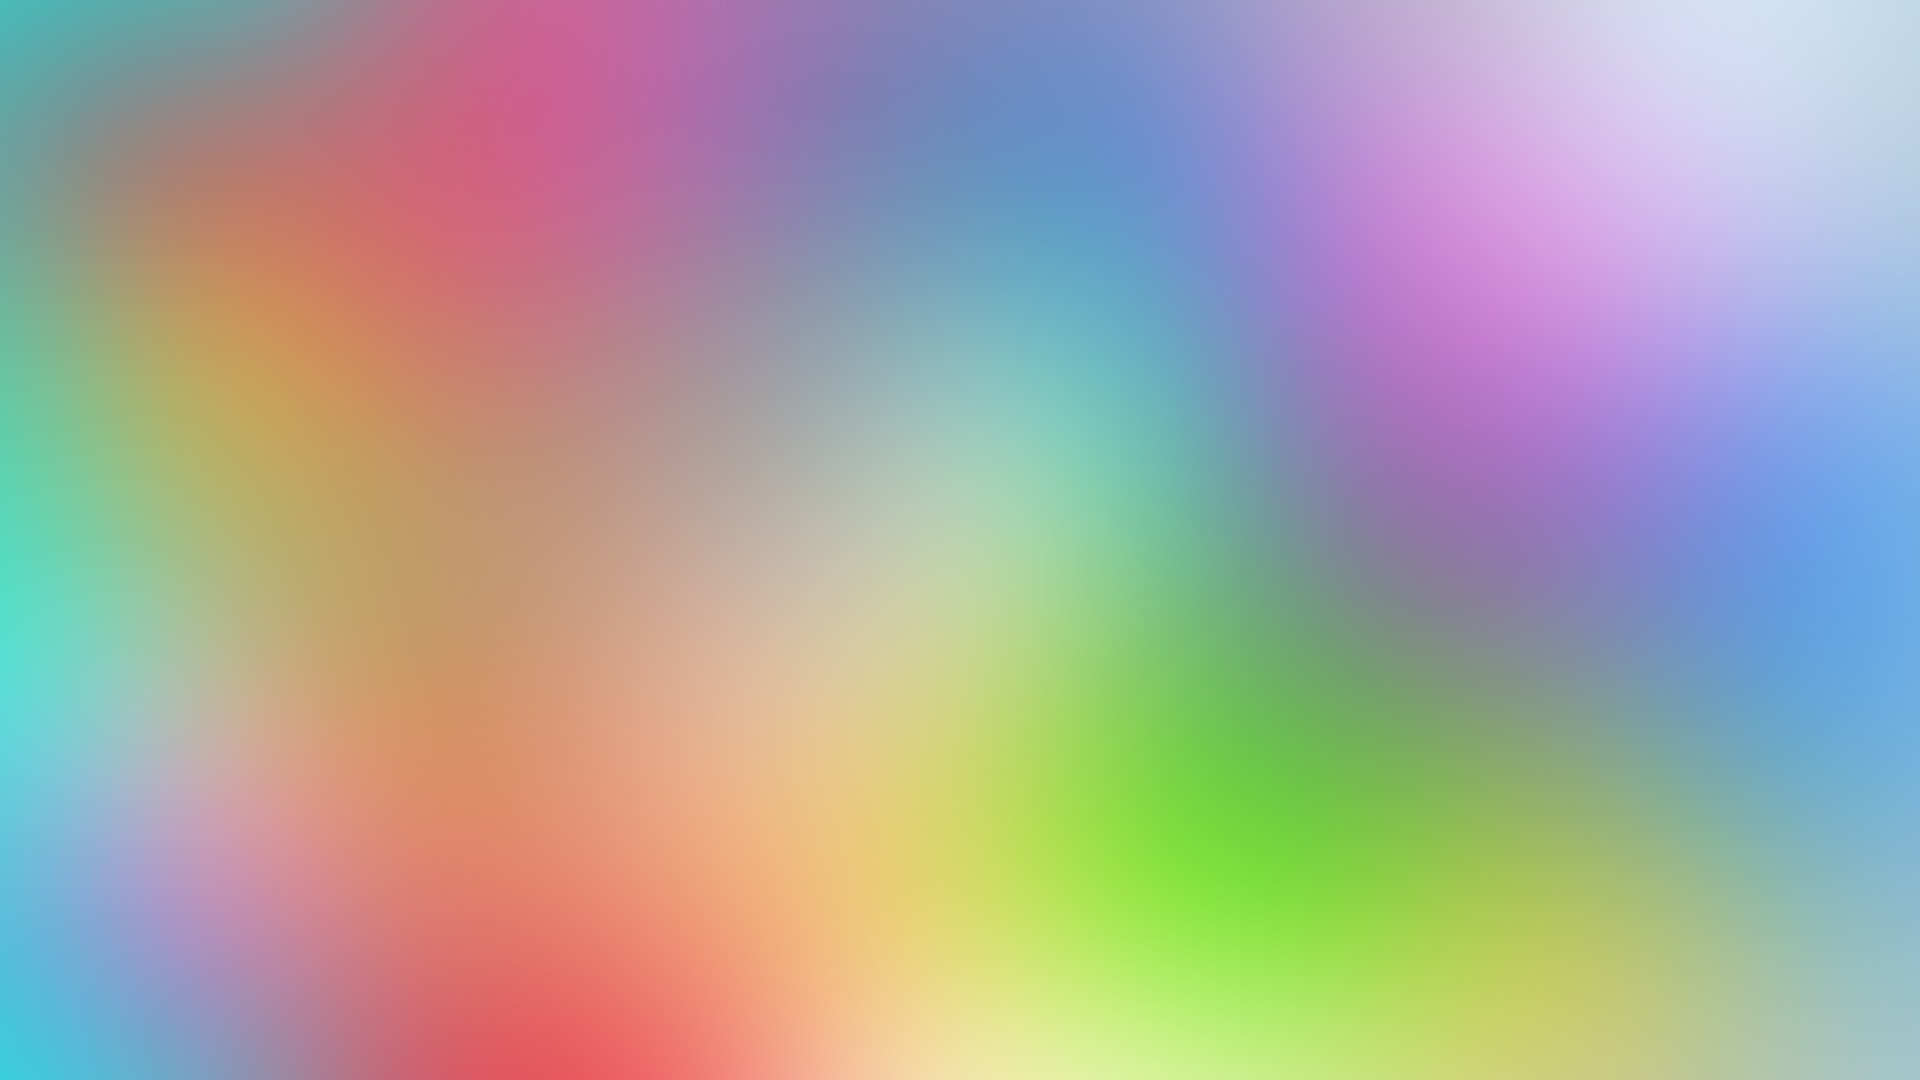 Color Wallpaper Download Free Cool Hd Backgrounds For